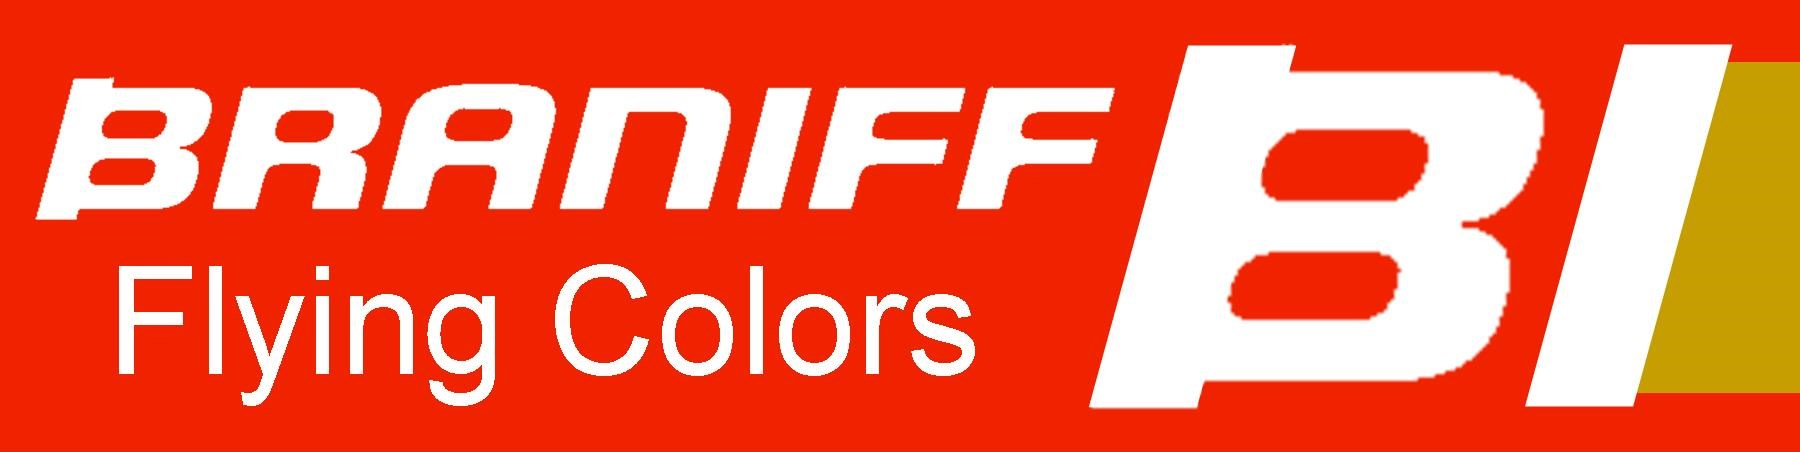 Braniff - Flying Colors - Red/Aztec Gold